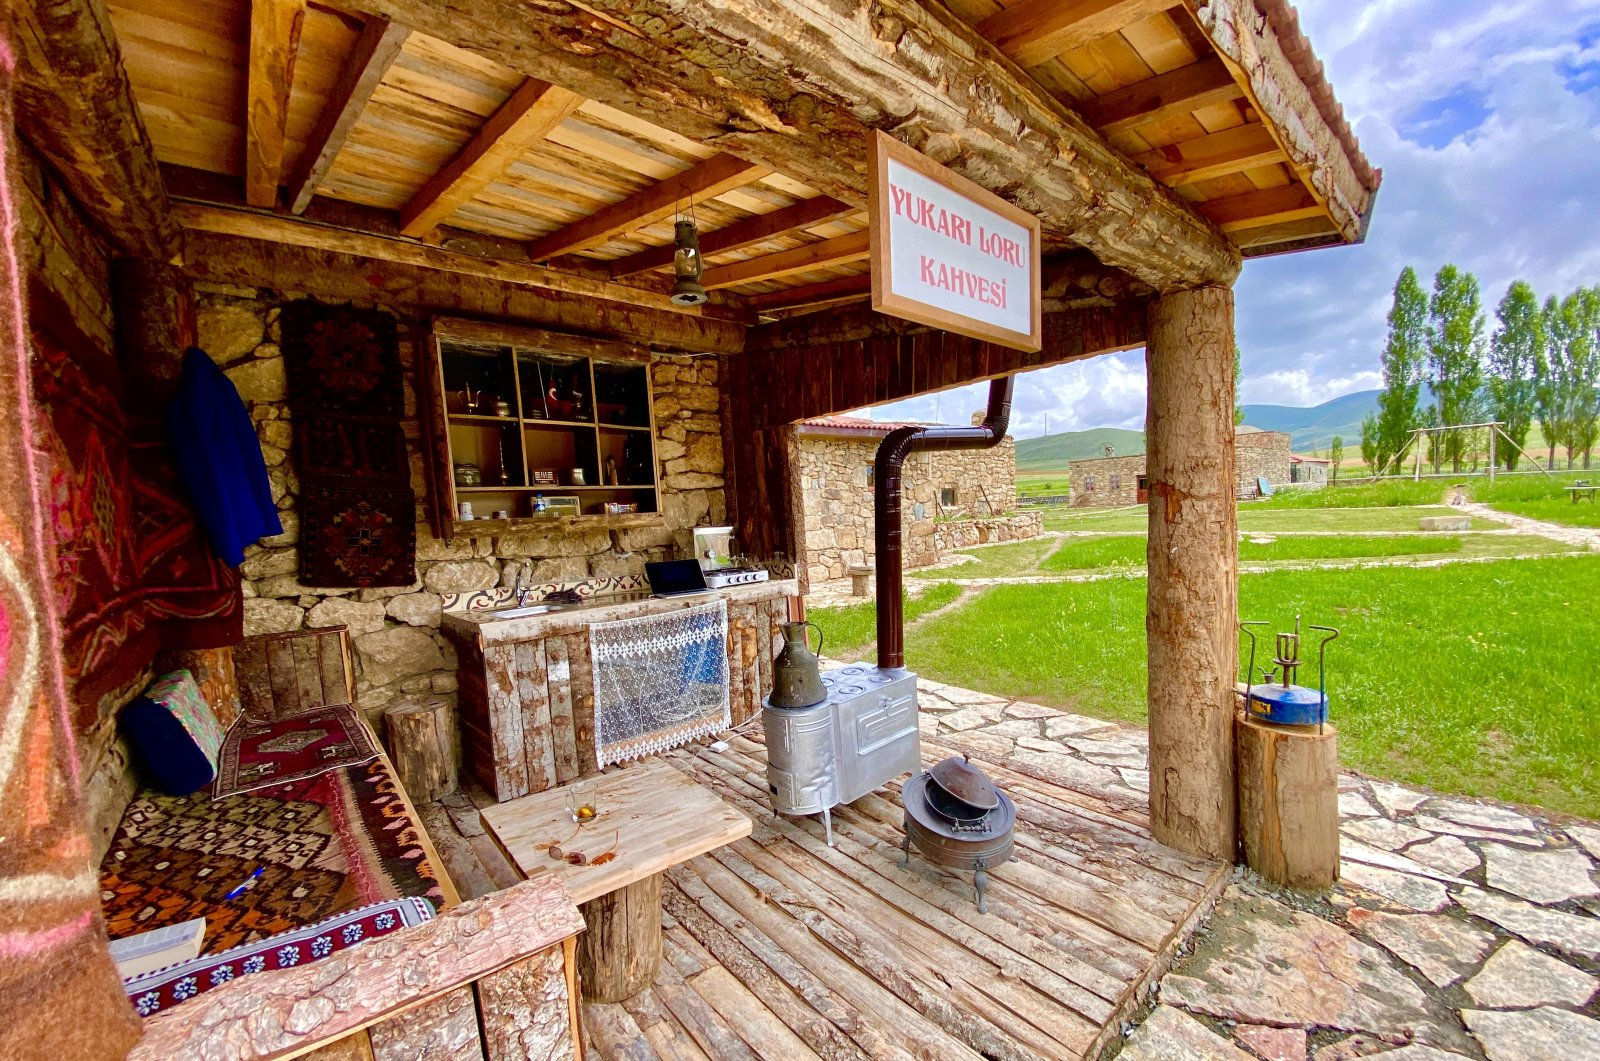 The coffee shop is one of the thematic houses in the Kenan Yavuz Ethnography Museum. (Courtesy of Kenan Yavuz Ethnography Museum )